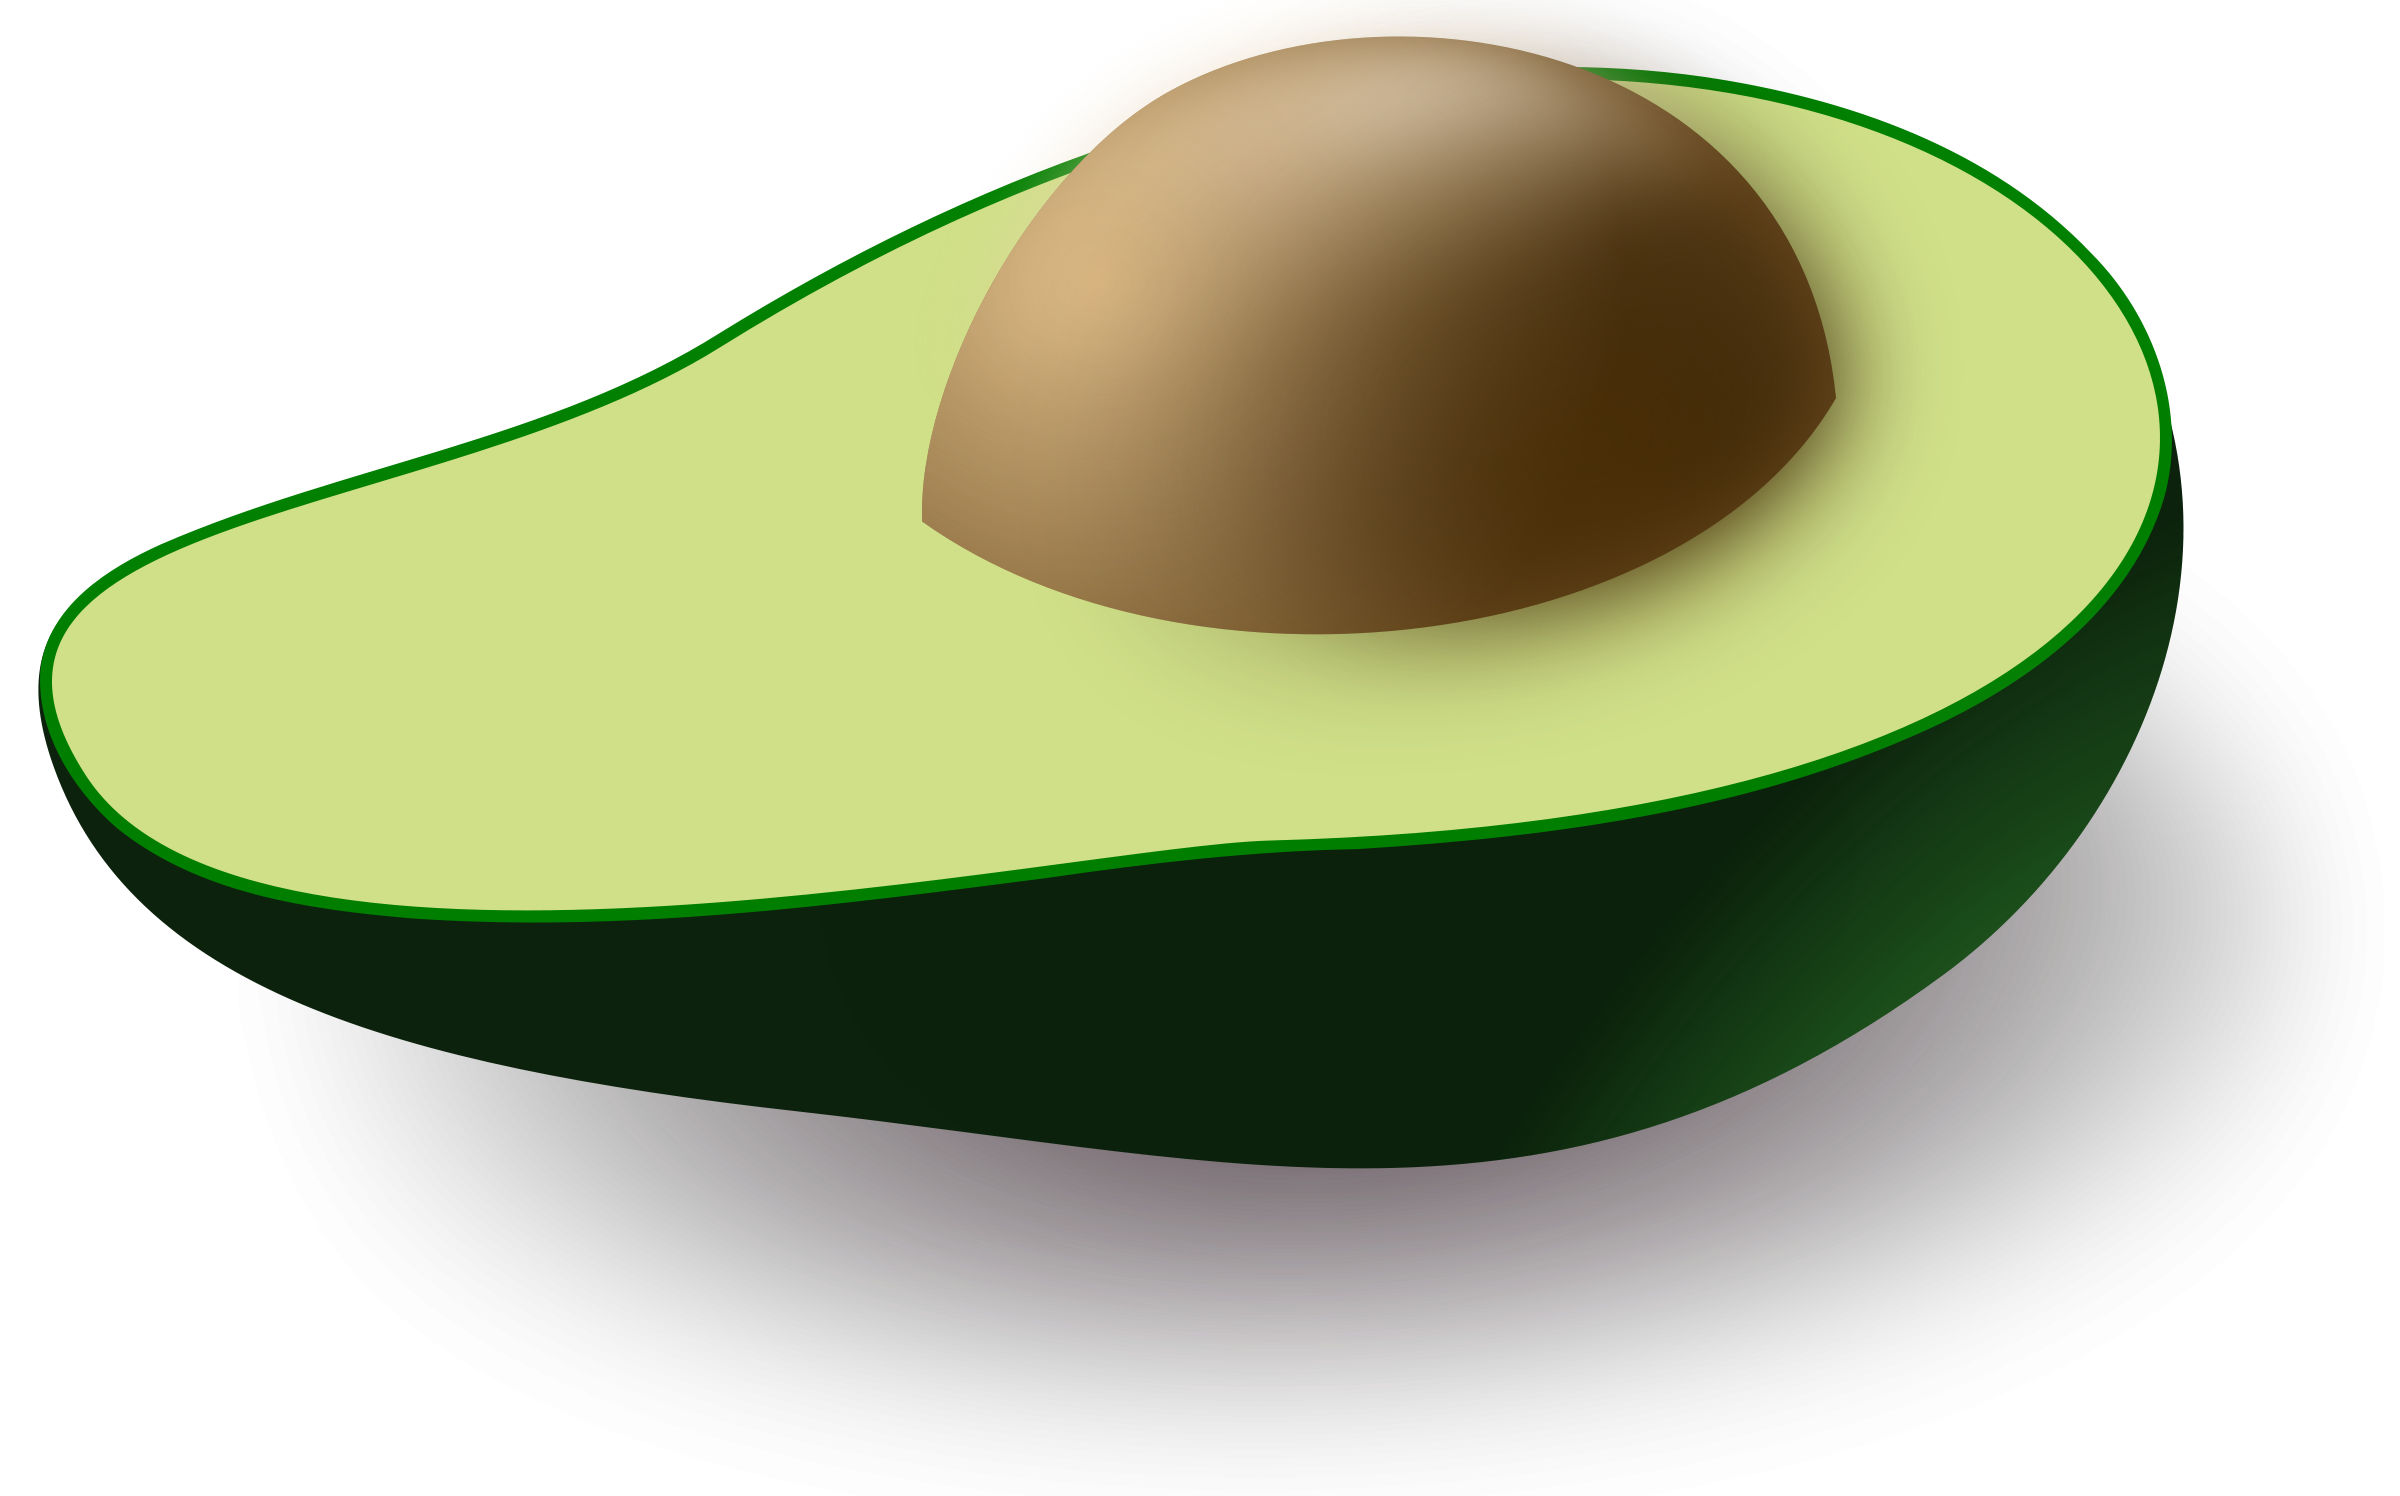 Avocado clipart vegetable Clipart Clipart Images Free avocado%20clipart